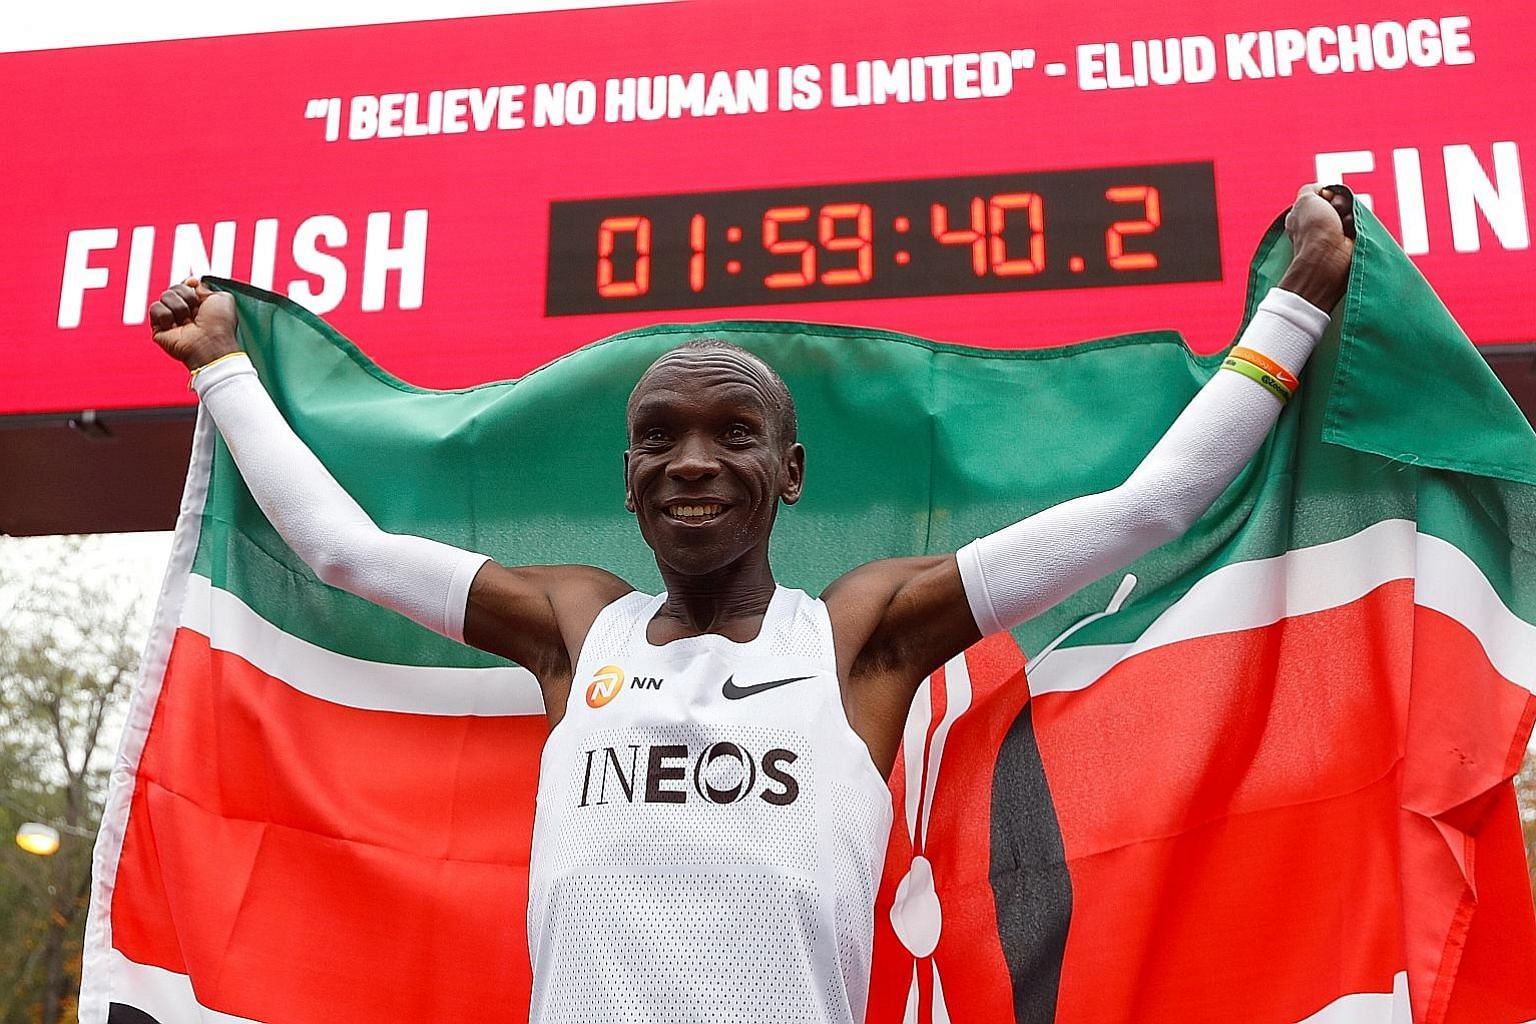 Eliud Kipchoge's shattering of the two-hour barrier during his staged run in Vienna in October has captured the imagination of many runners, including Robert de Castella, who last held the marathon world record in 1981.